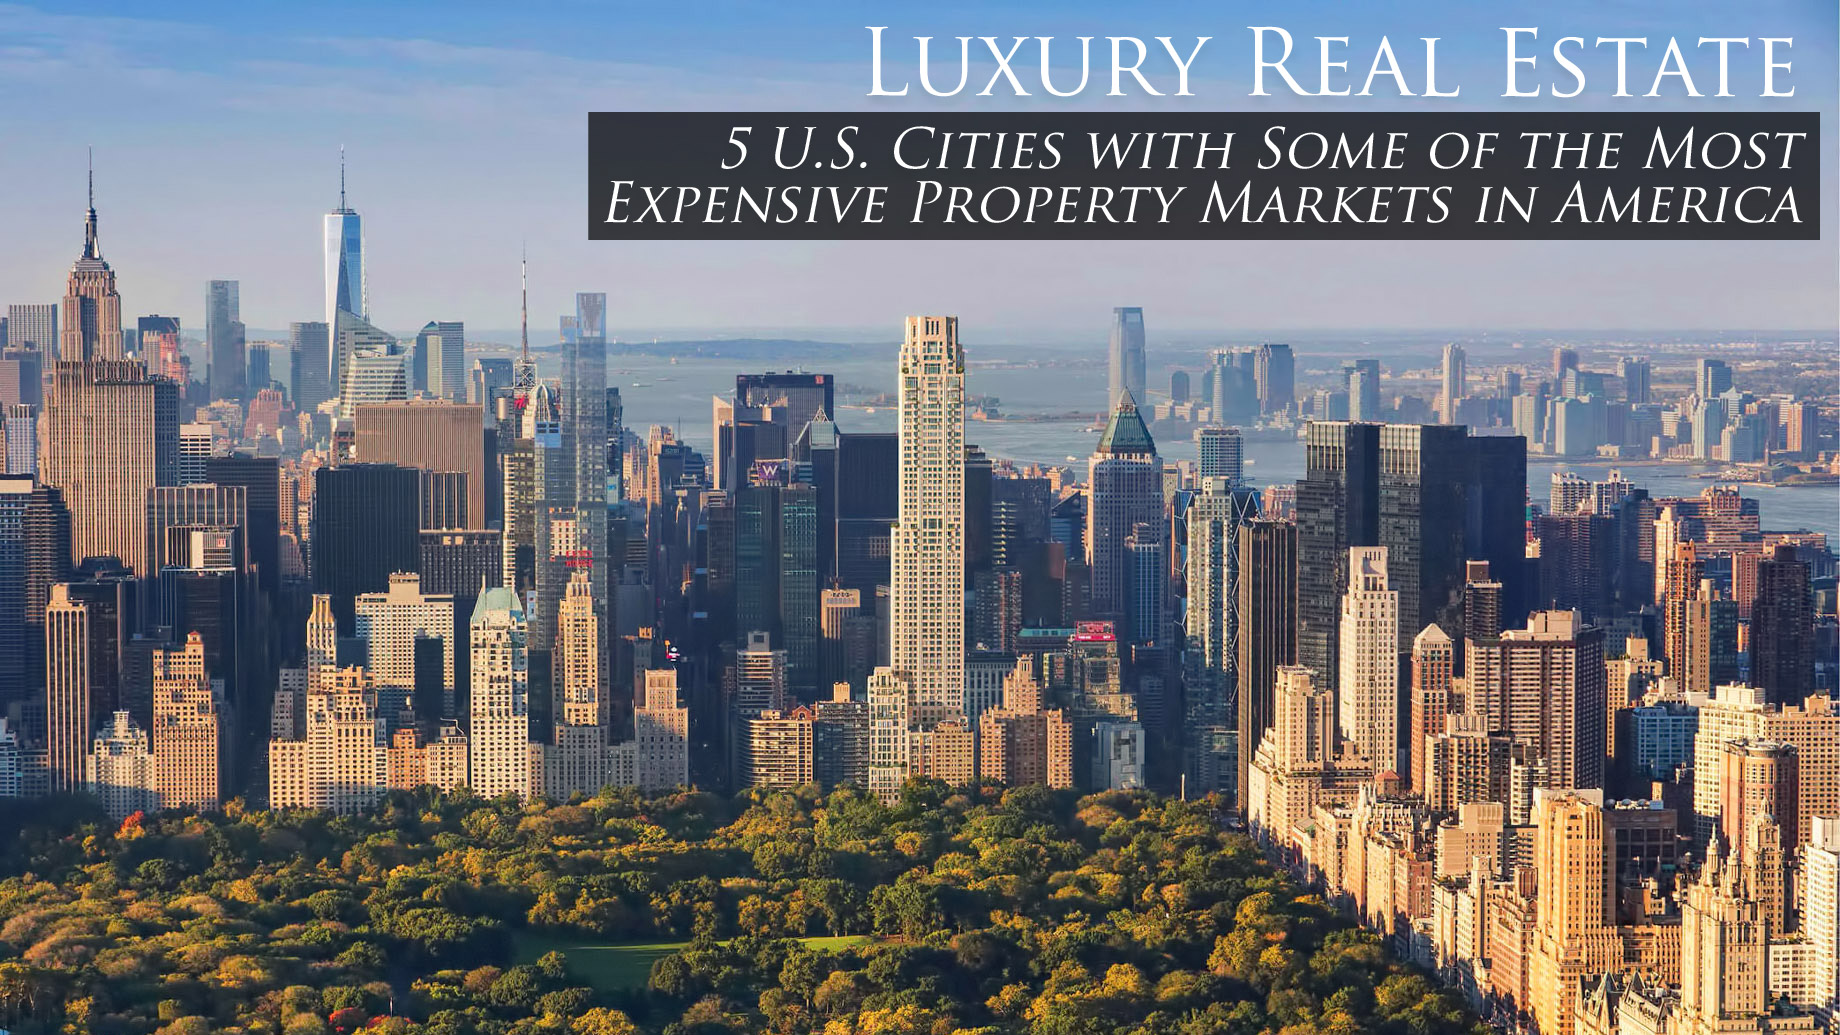 Luxury Real Estate - 5 U.S. Cities with Some of the Most Expensive Property Markets in America